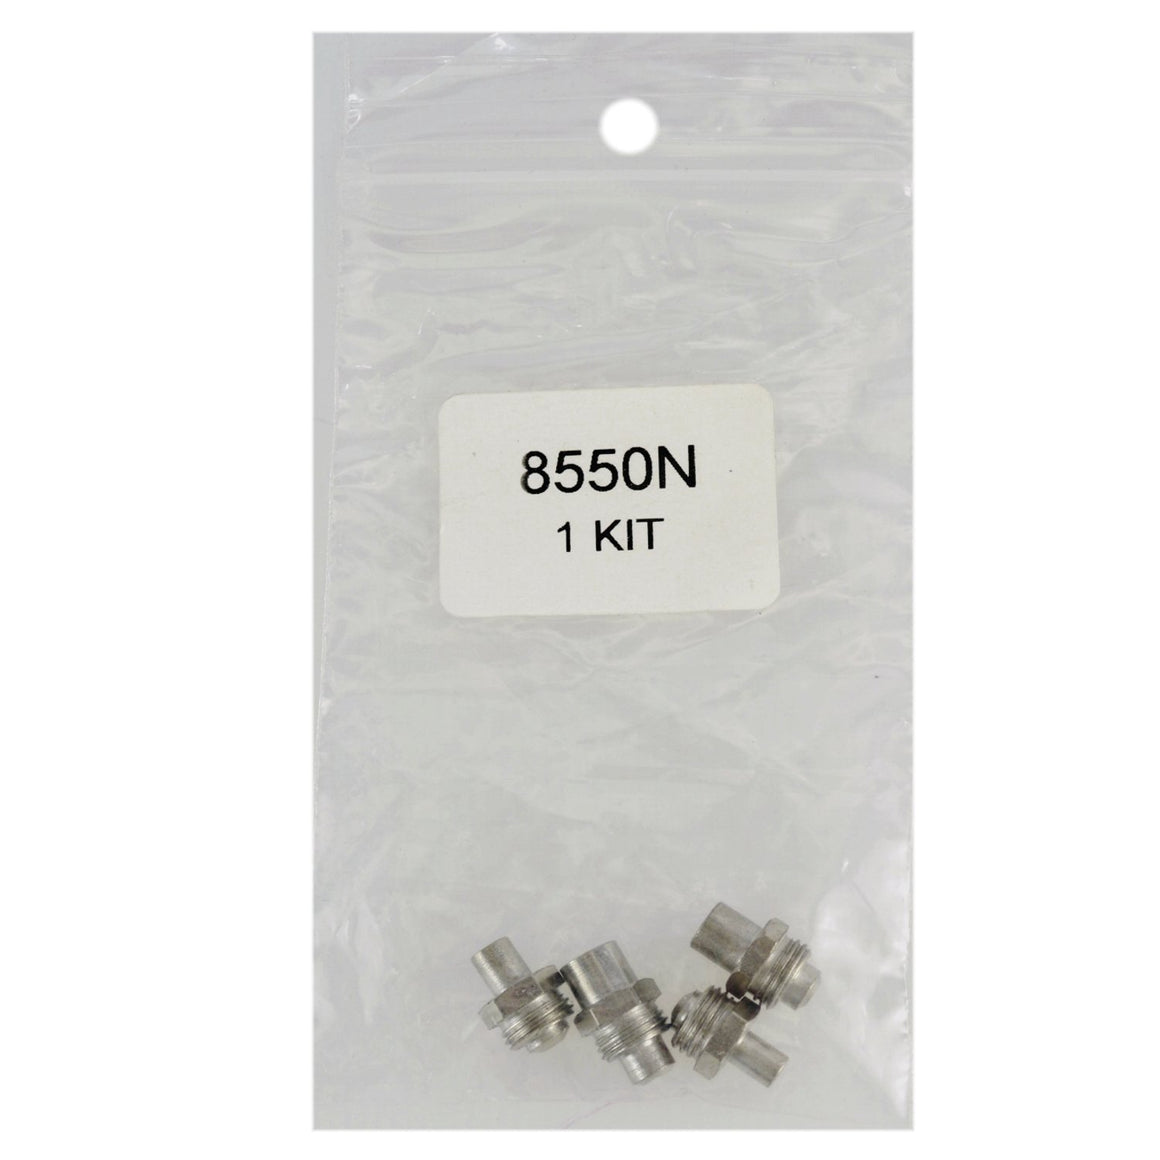 8550N Nosepiece Kit for 8550 Rivet Tool